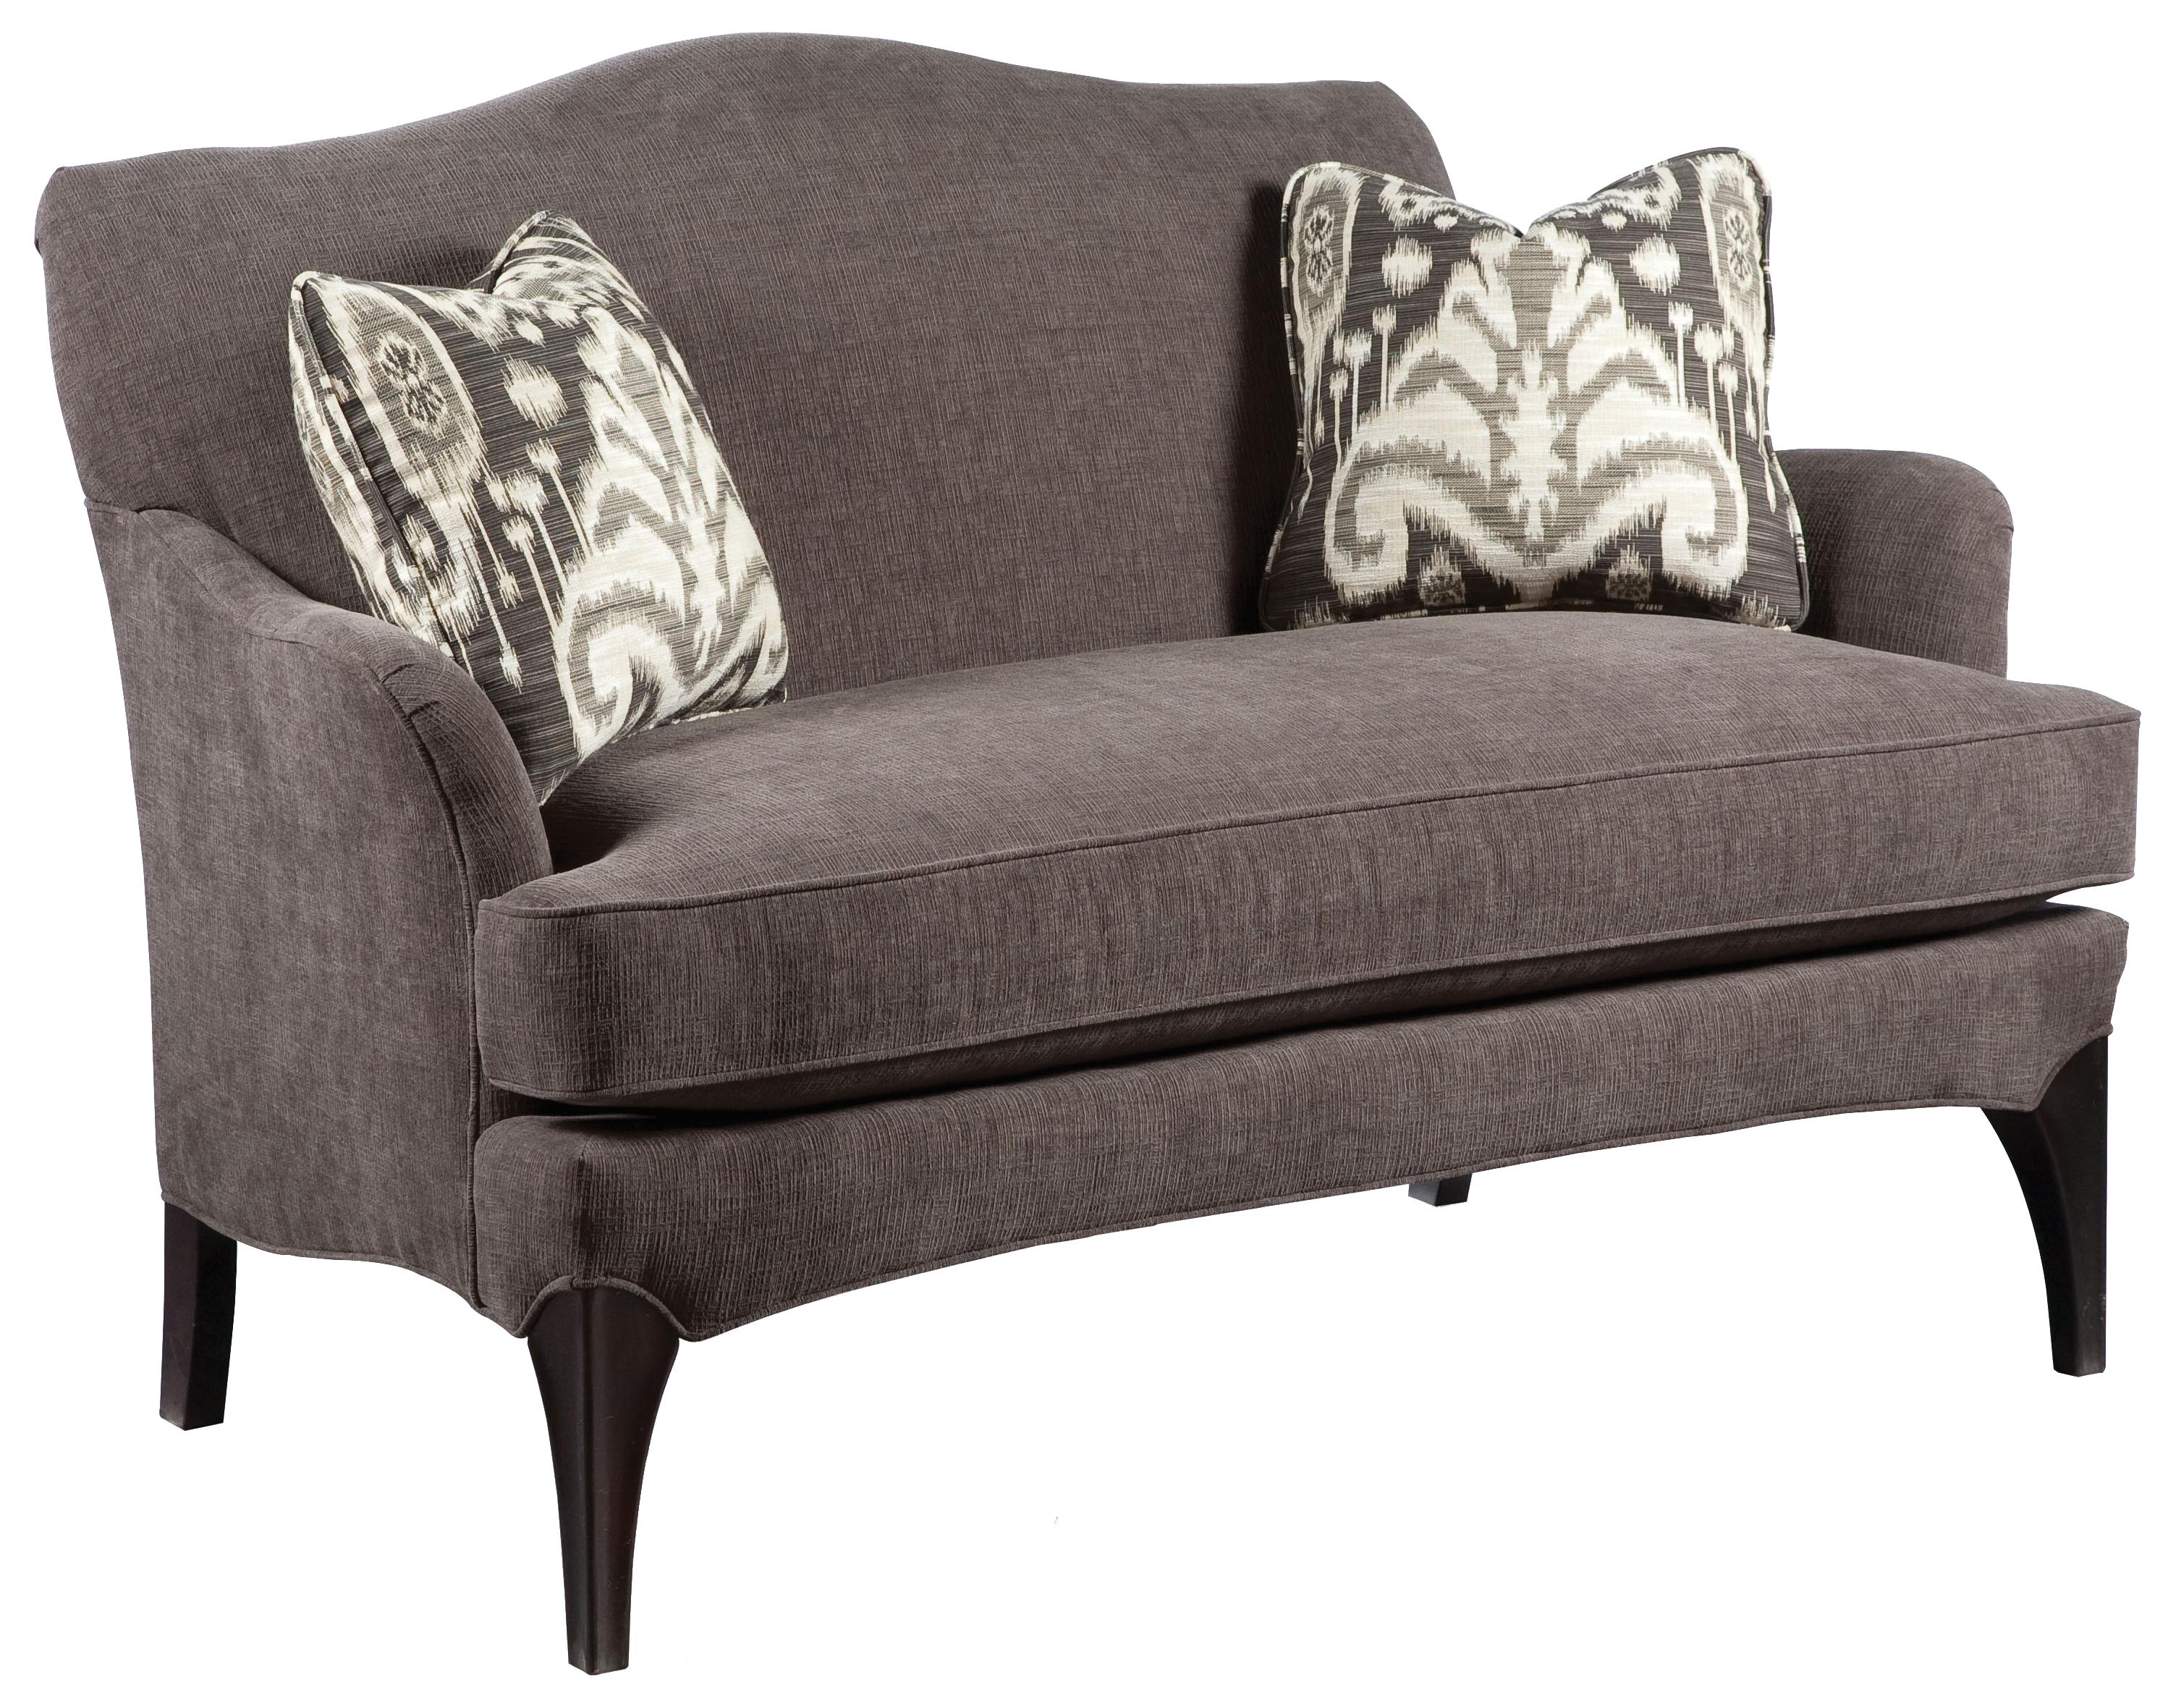 Exposed Wood Furniture ~ Fairfield sofa accents contemporary styled settee